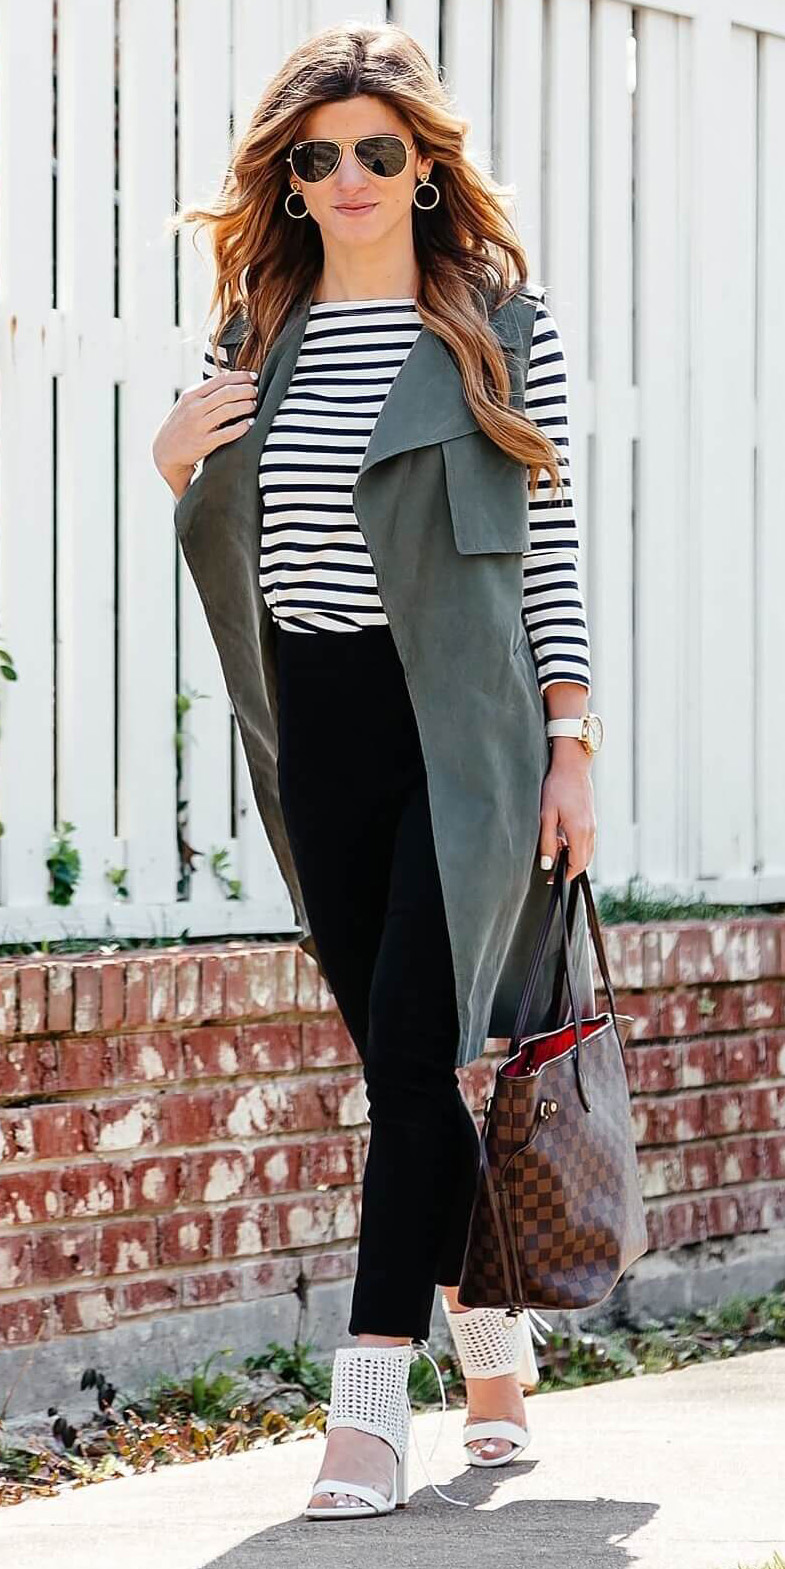 black-slim-pants-black-tee-stripe-hairr-sun-brown-bag-tote-white-shoe-sandalh-green-olive-vest-utility-trench-spring-summer-work.jpg